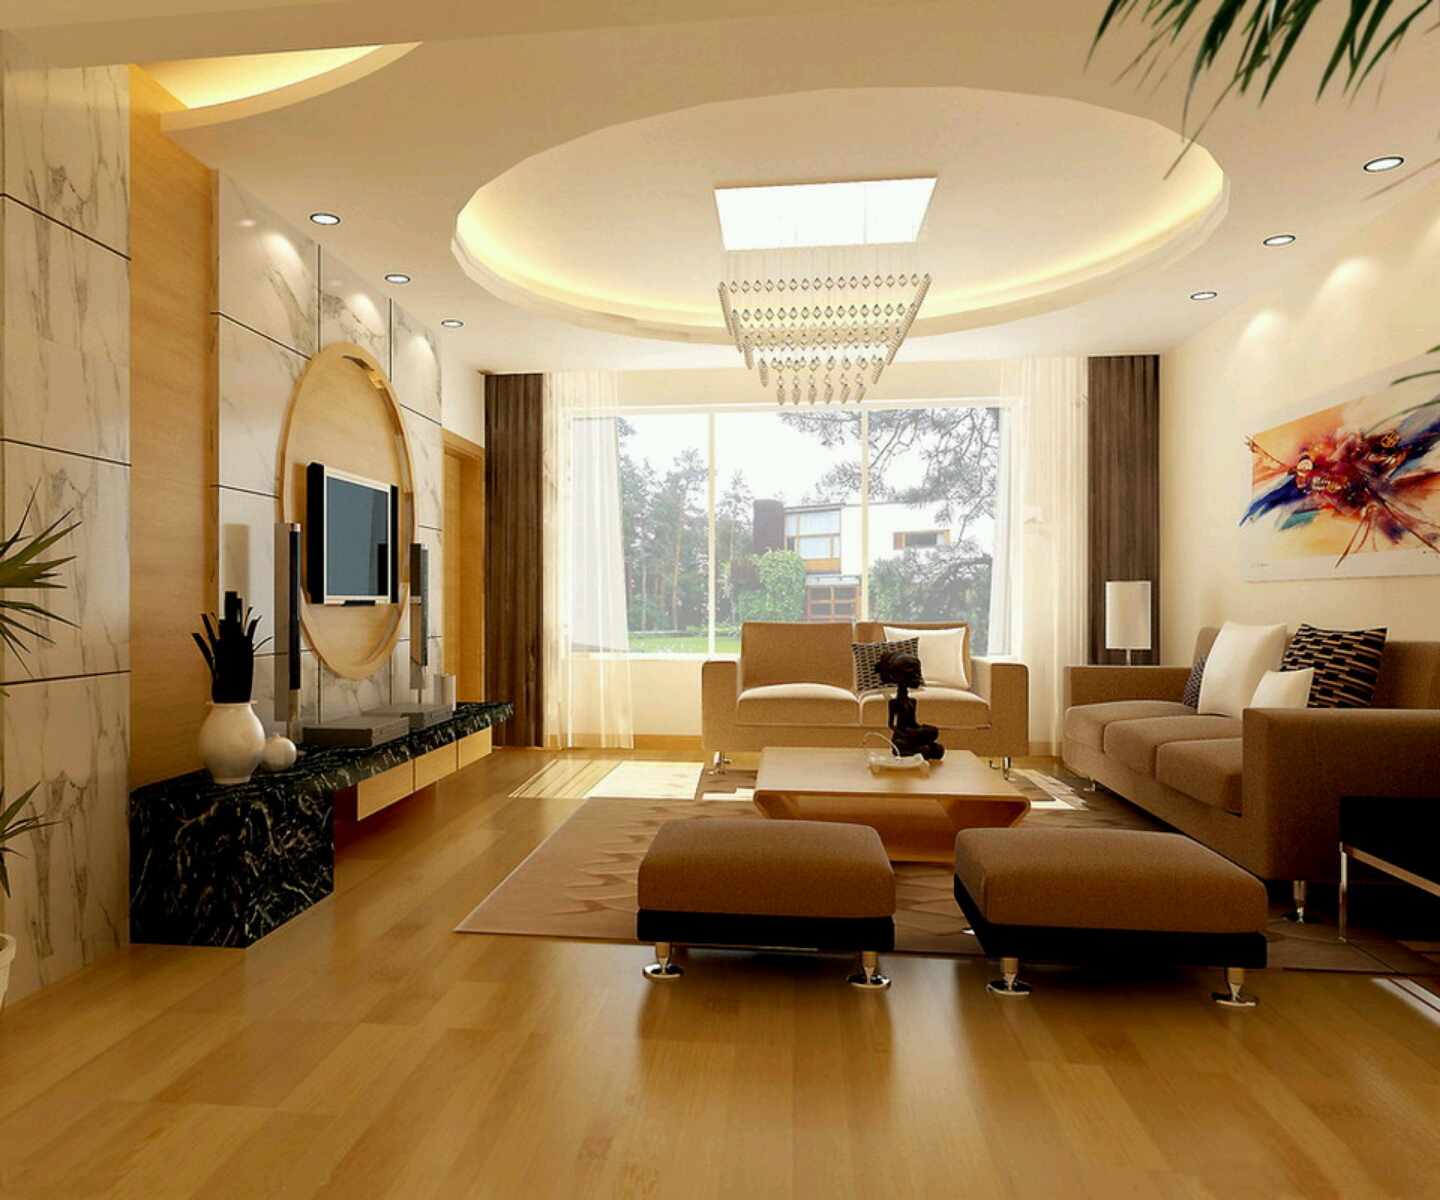 Modern interior decoration living rooms ceiling designs ideas new home designs - Living room ceiling interior designs ...